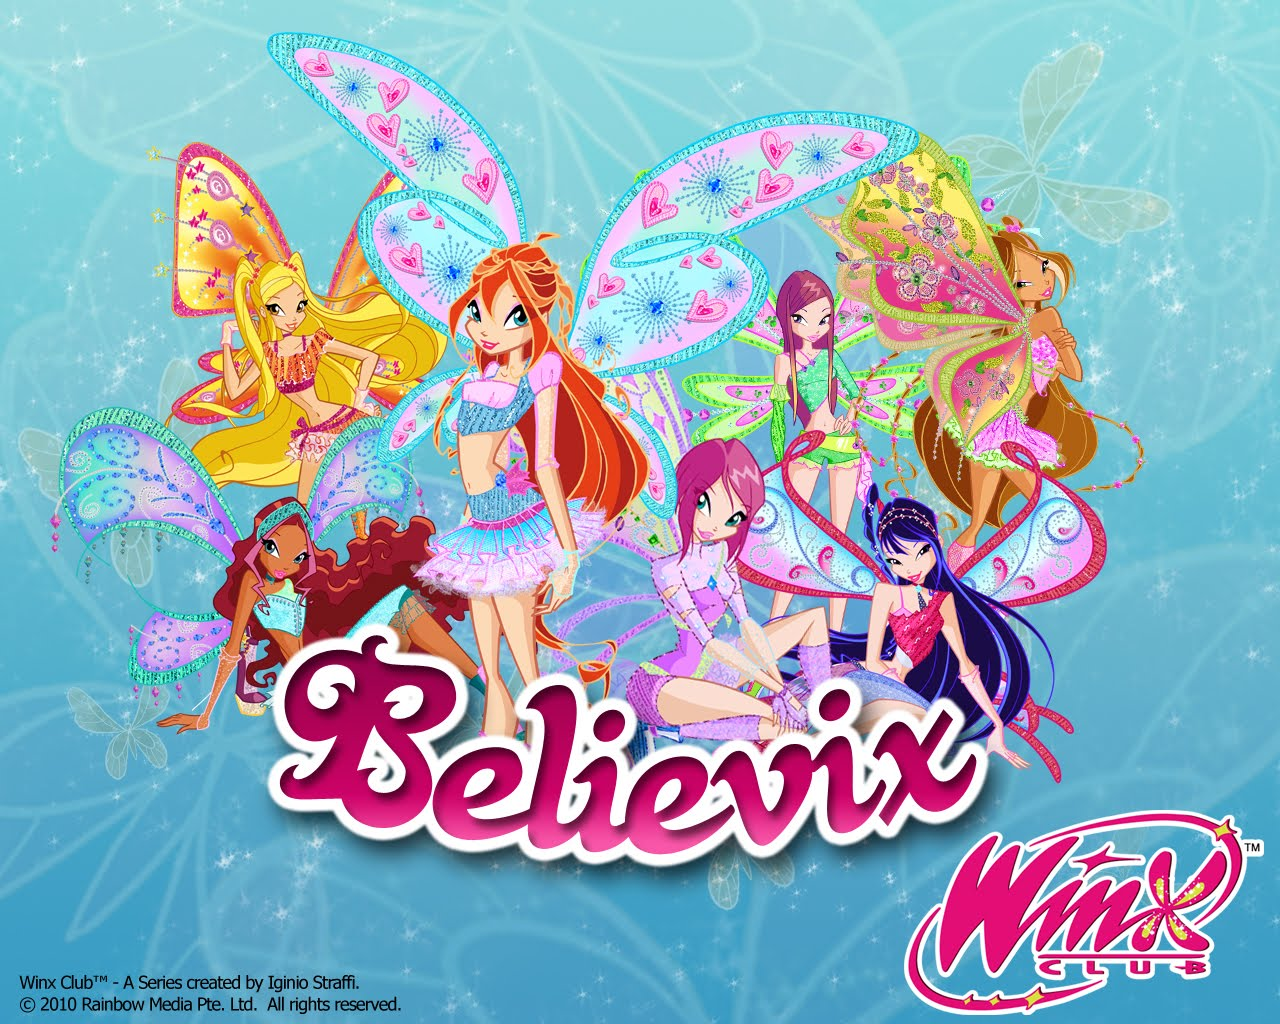 winxclub4ever news new winx club group awesomely cute